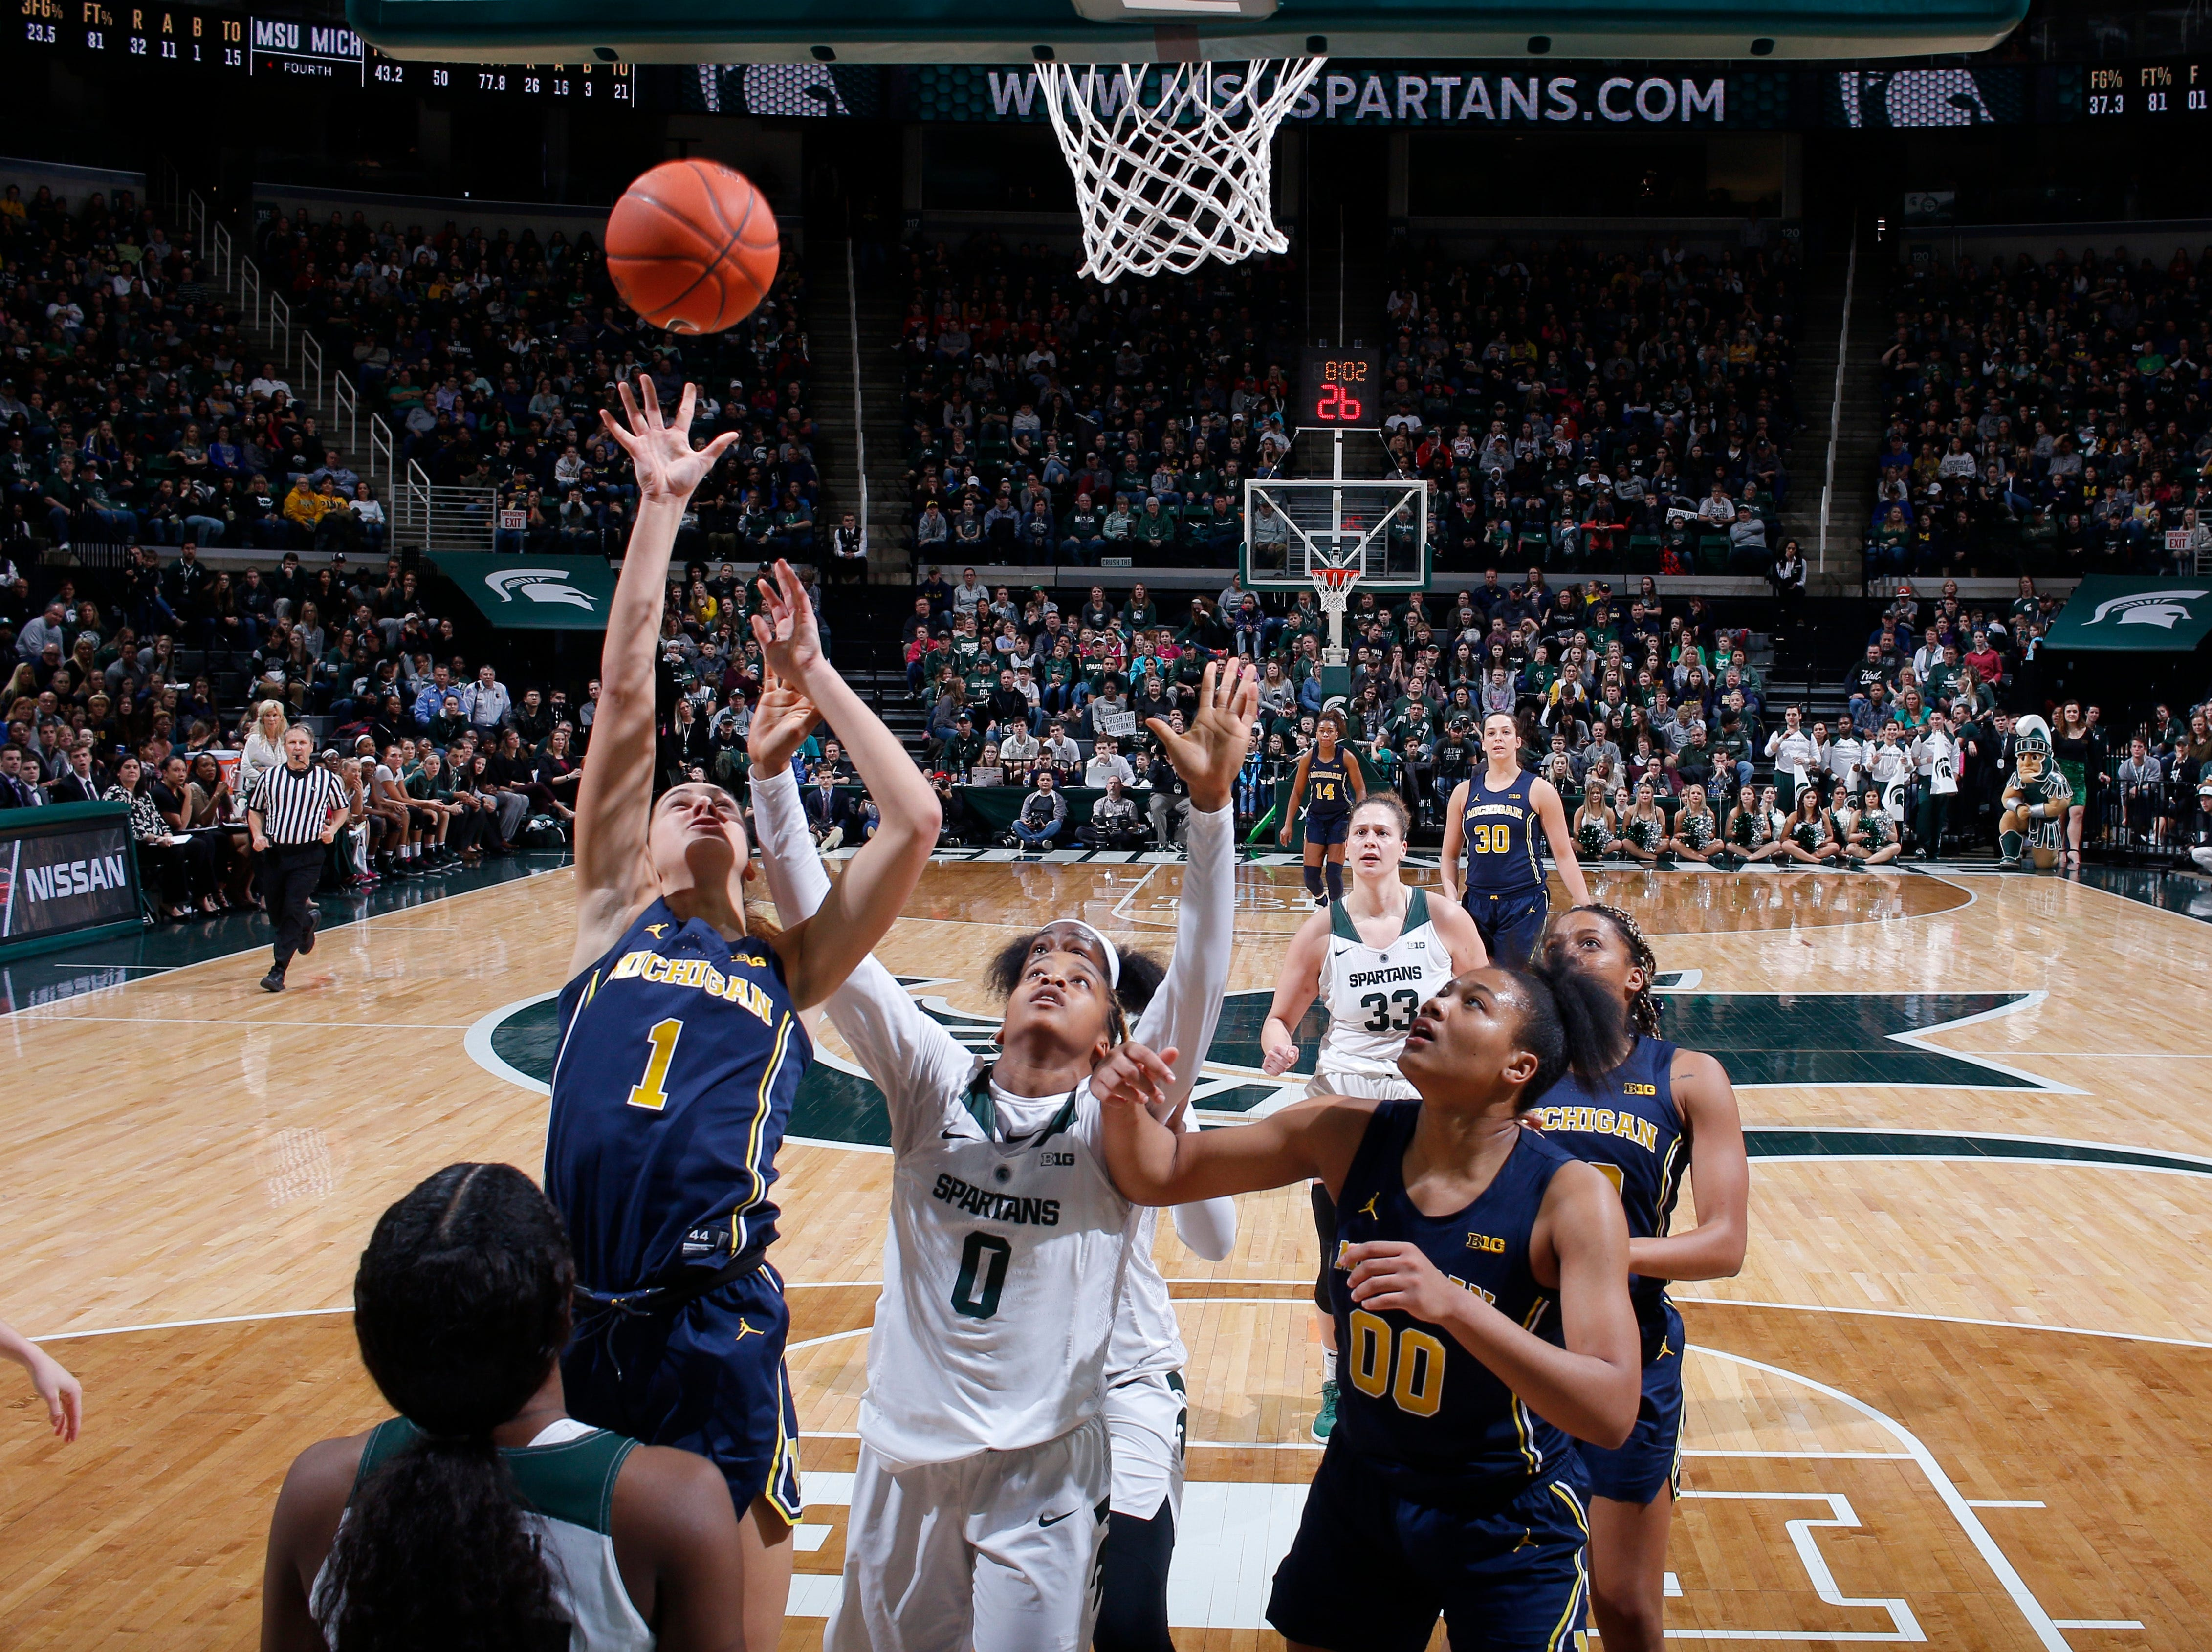 Michigan's Amy Dilk (1) shoots against Michigan State's Shay Colley (0) as Michigan's Naz Hillmon (00) watches during an NCAA college basketball game, Sunday, Feb. 24, 2019, in East Lansing, Mich. Michigan State won 74-64. (AP Photo/Al Goldis)